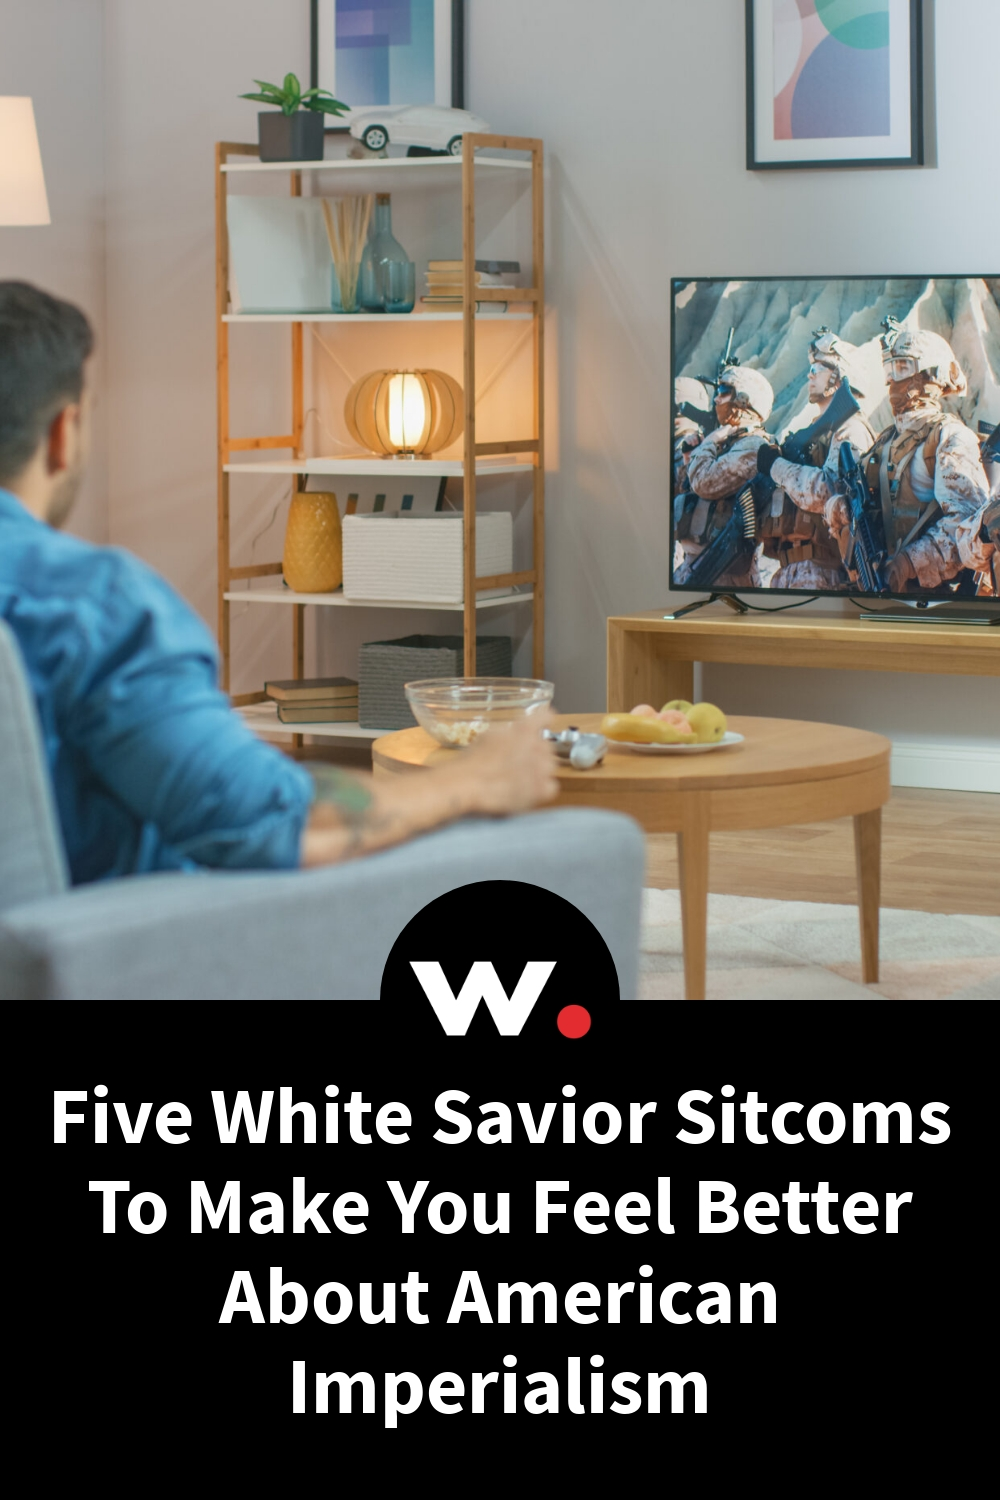 Five White Savior Sitcoms To Make You Feel Better About American Imperialism